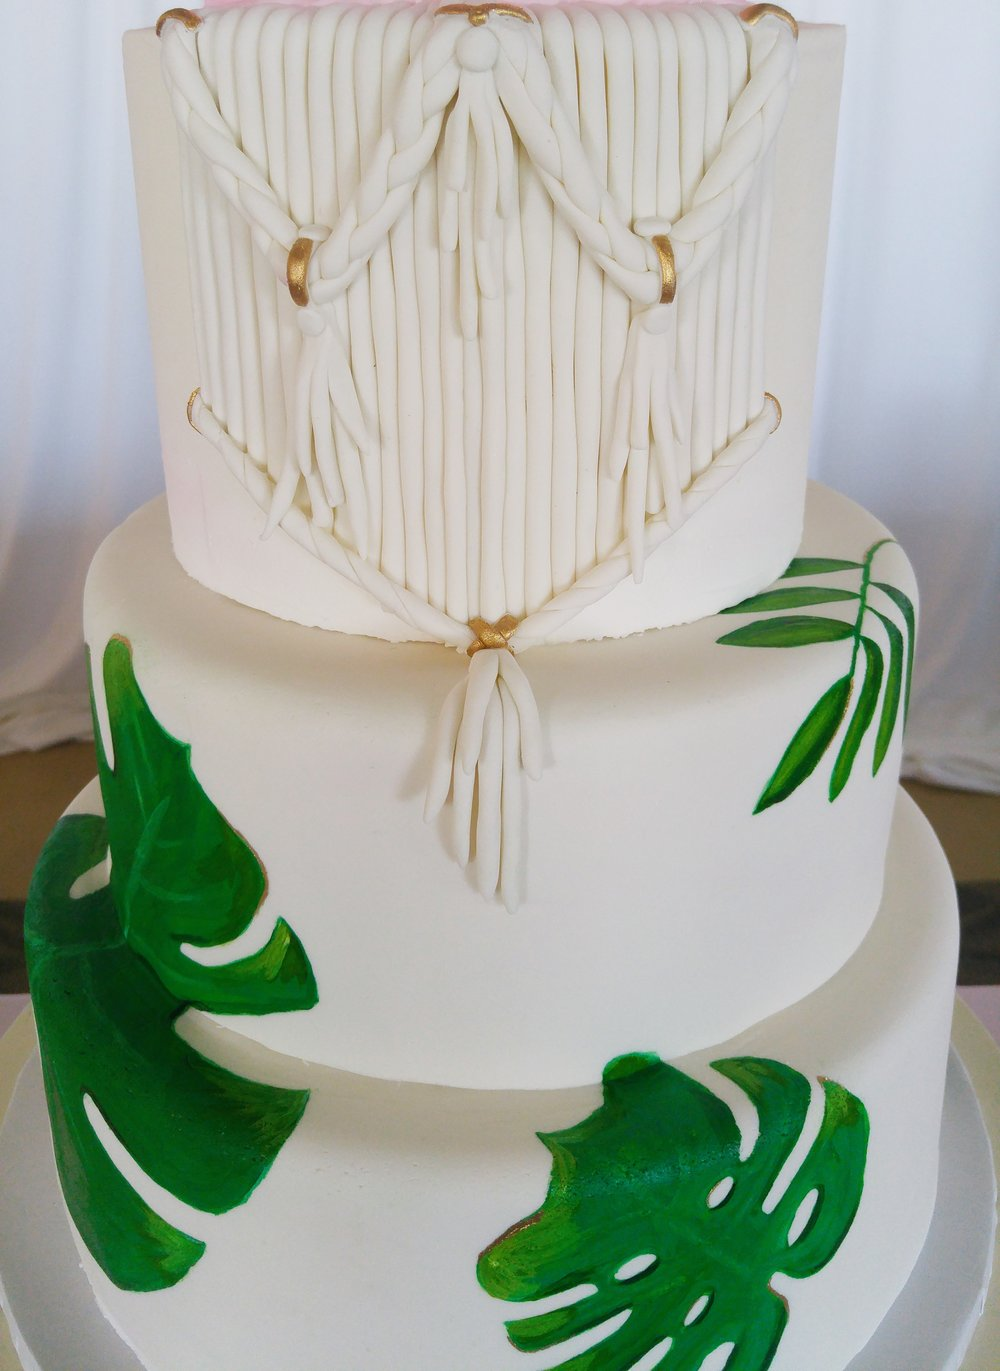 CakesEat Cakes-galleryCakes-journal Cakes-contact .Pink Baking Co.